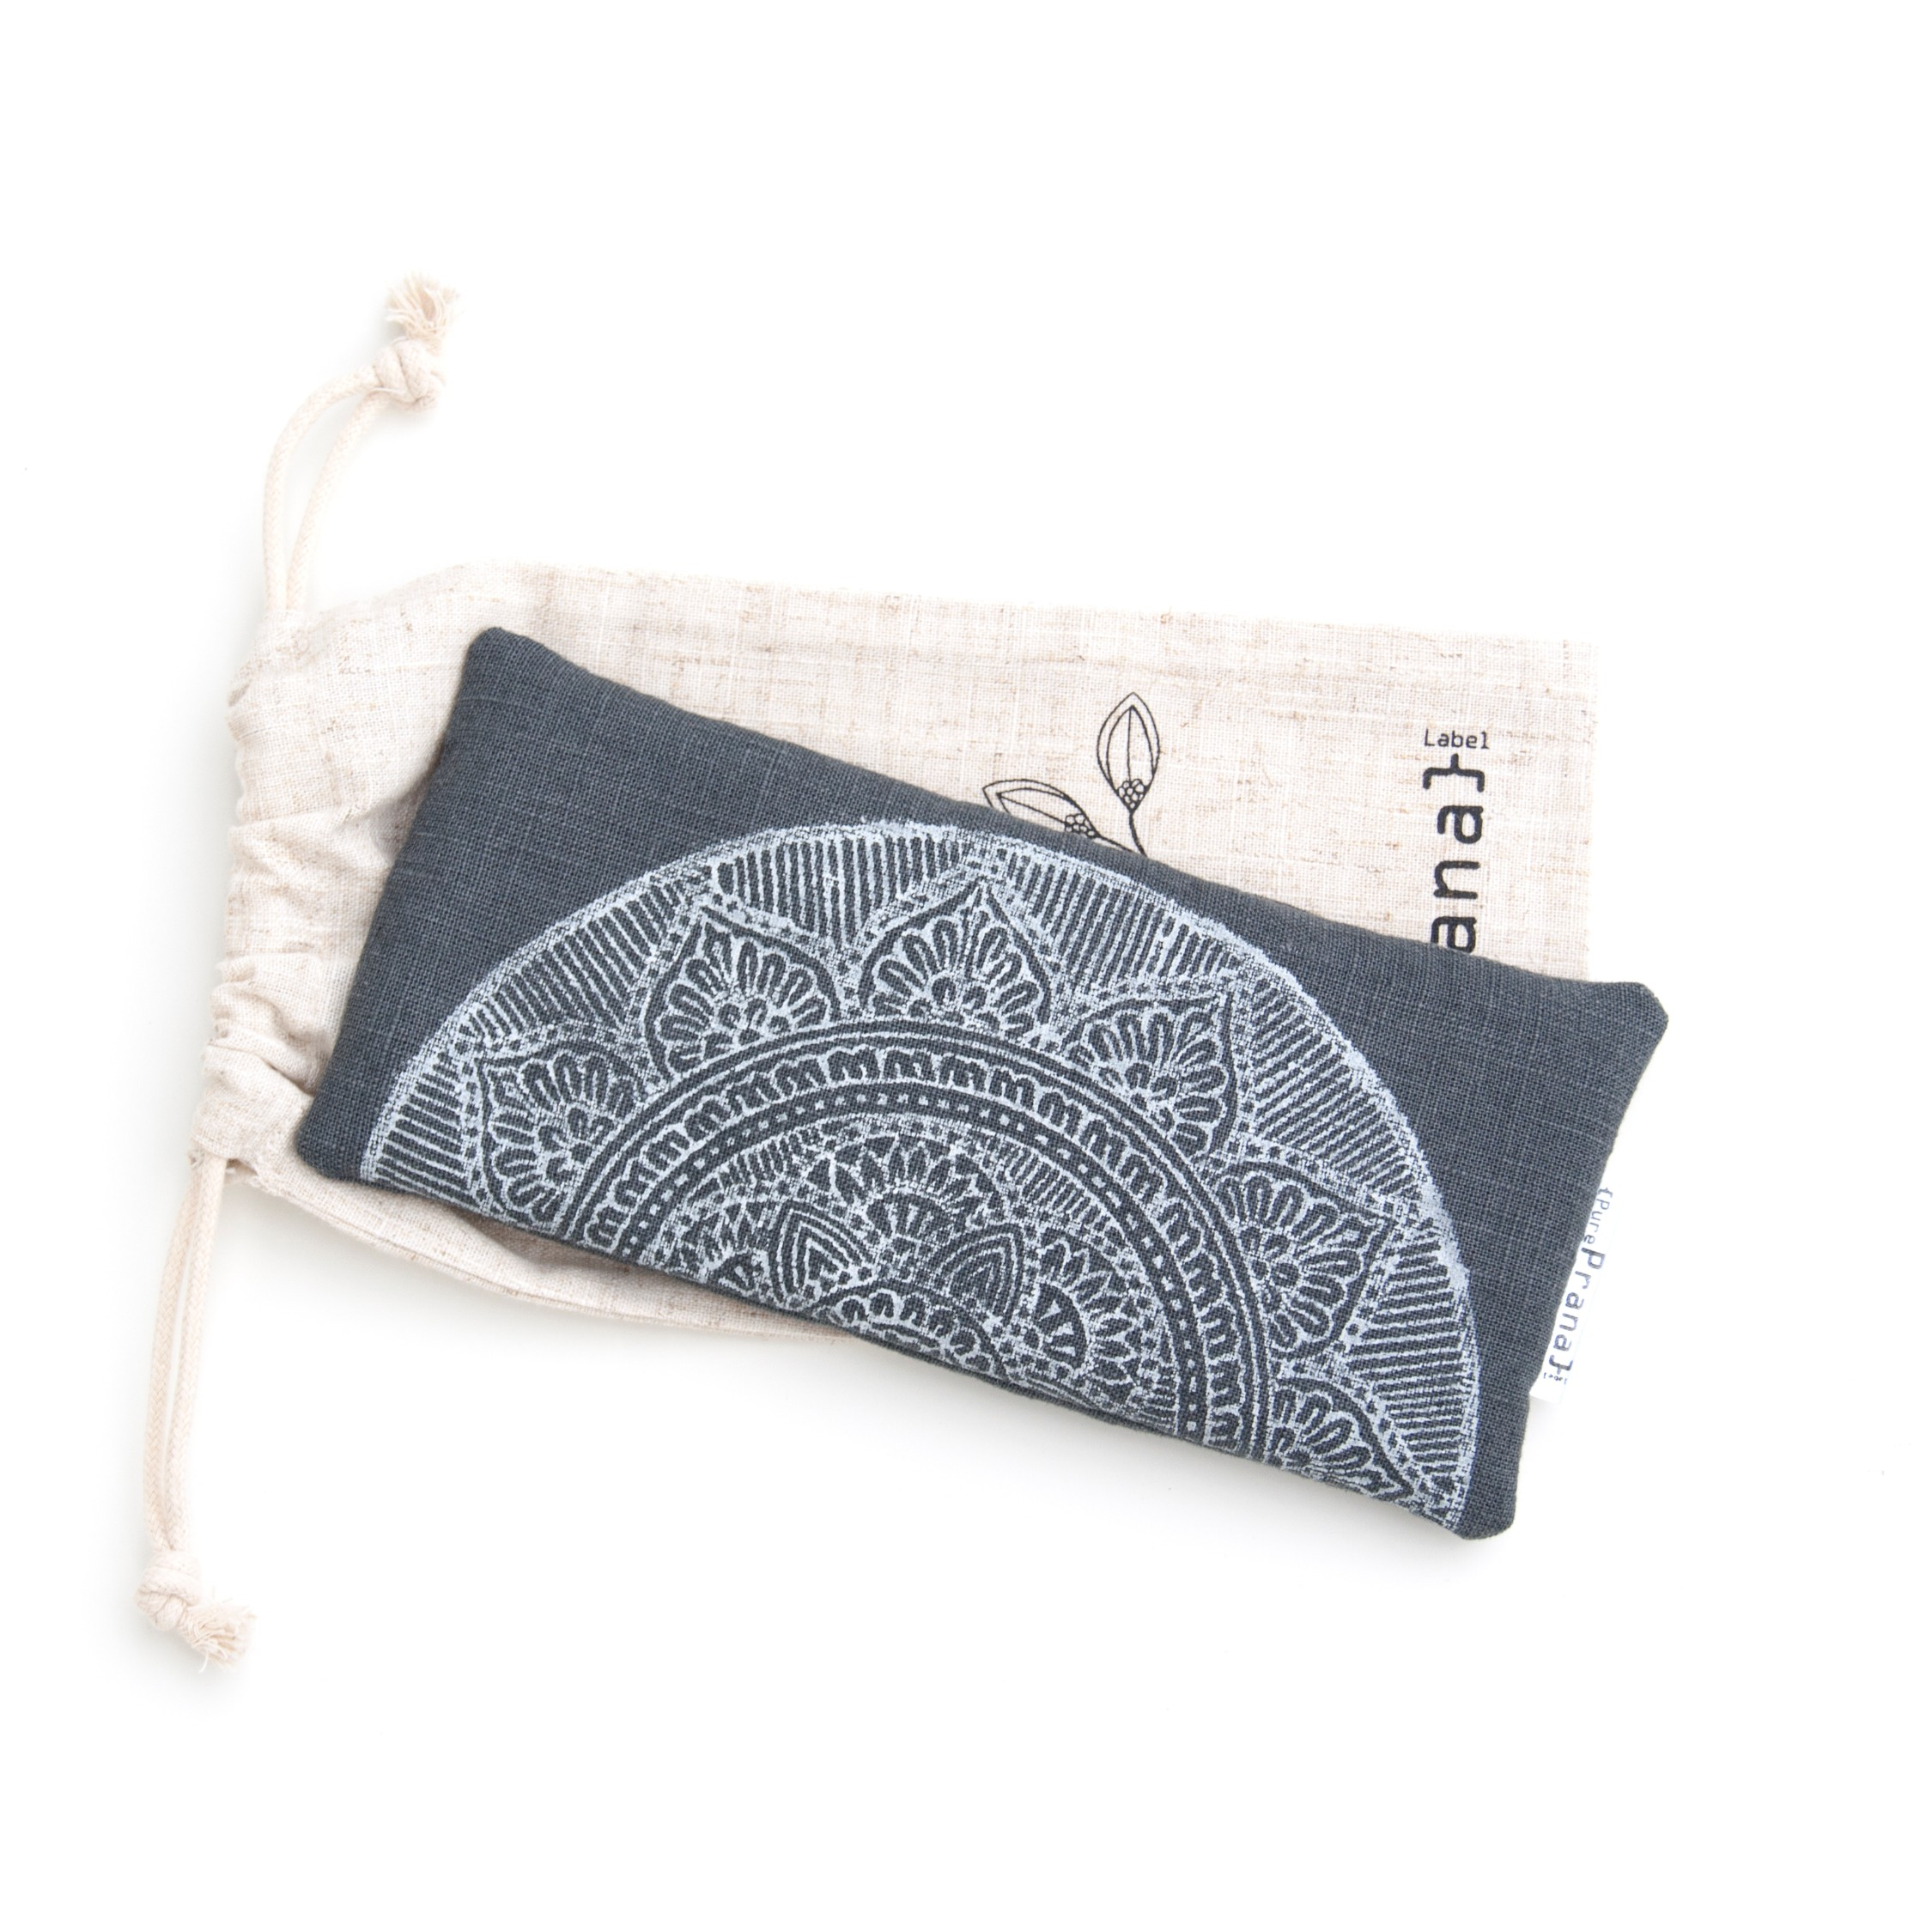 Yoga eye pillow mandala in dark gray by Pure Prana Label